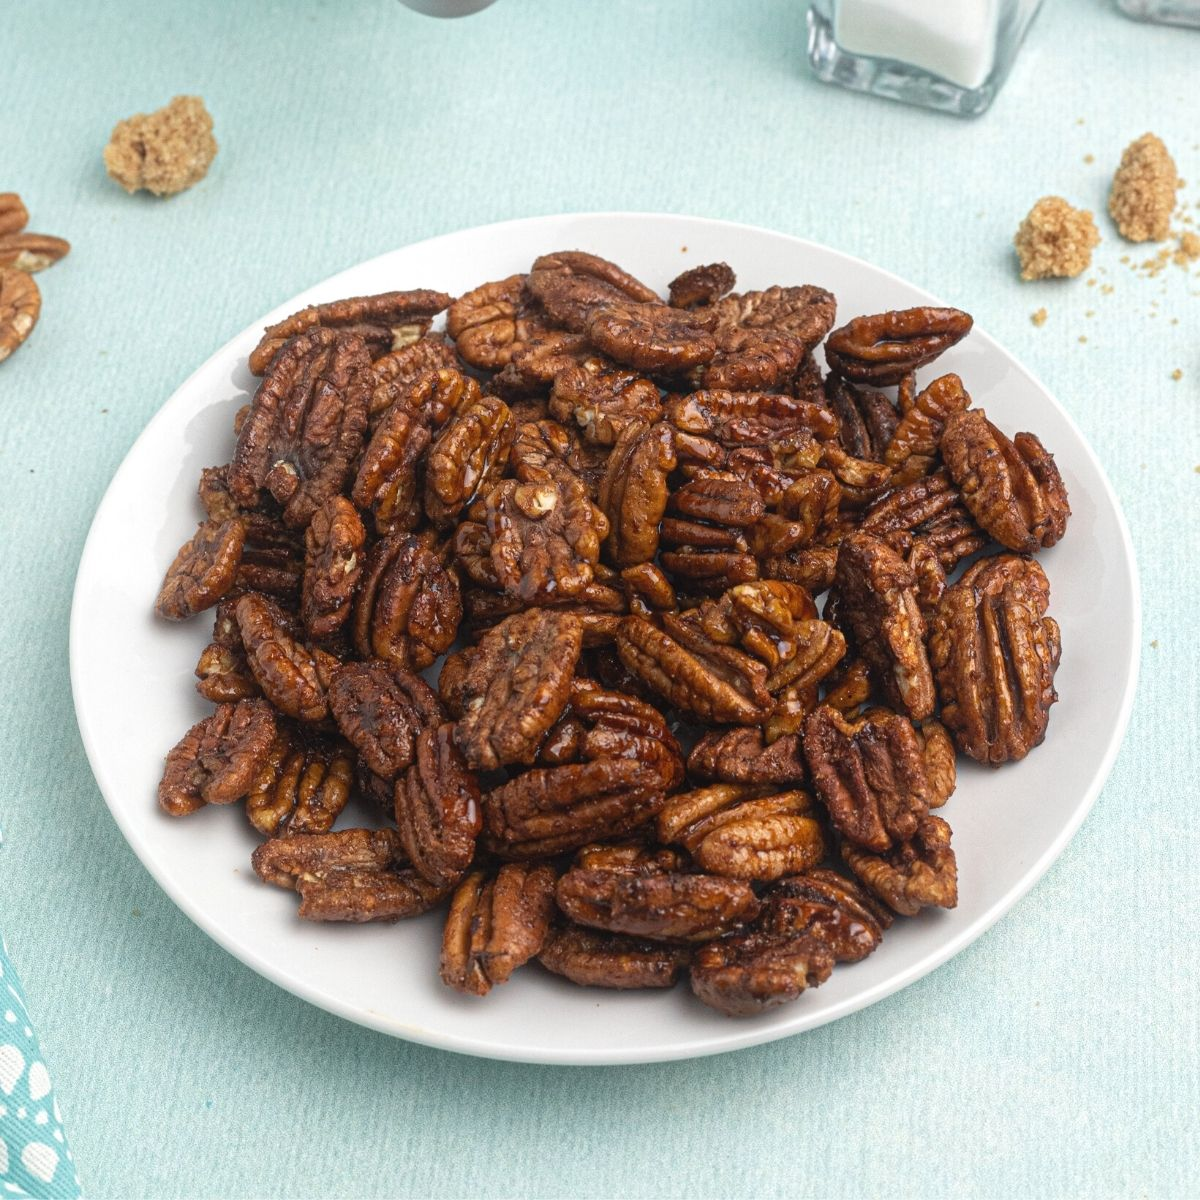 Cooked pecans, served on a white plate, in front of an air fryer, with scattered pecans and brown sugar around the plate.